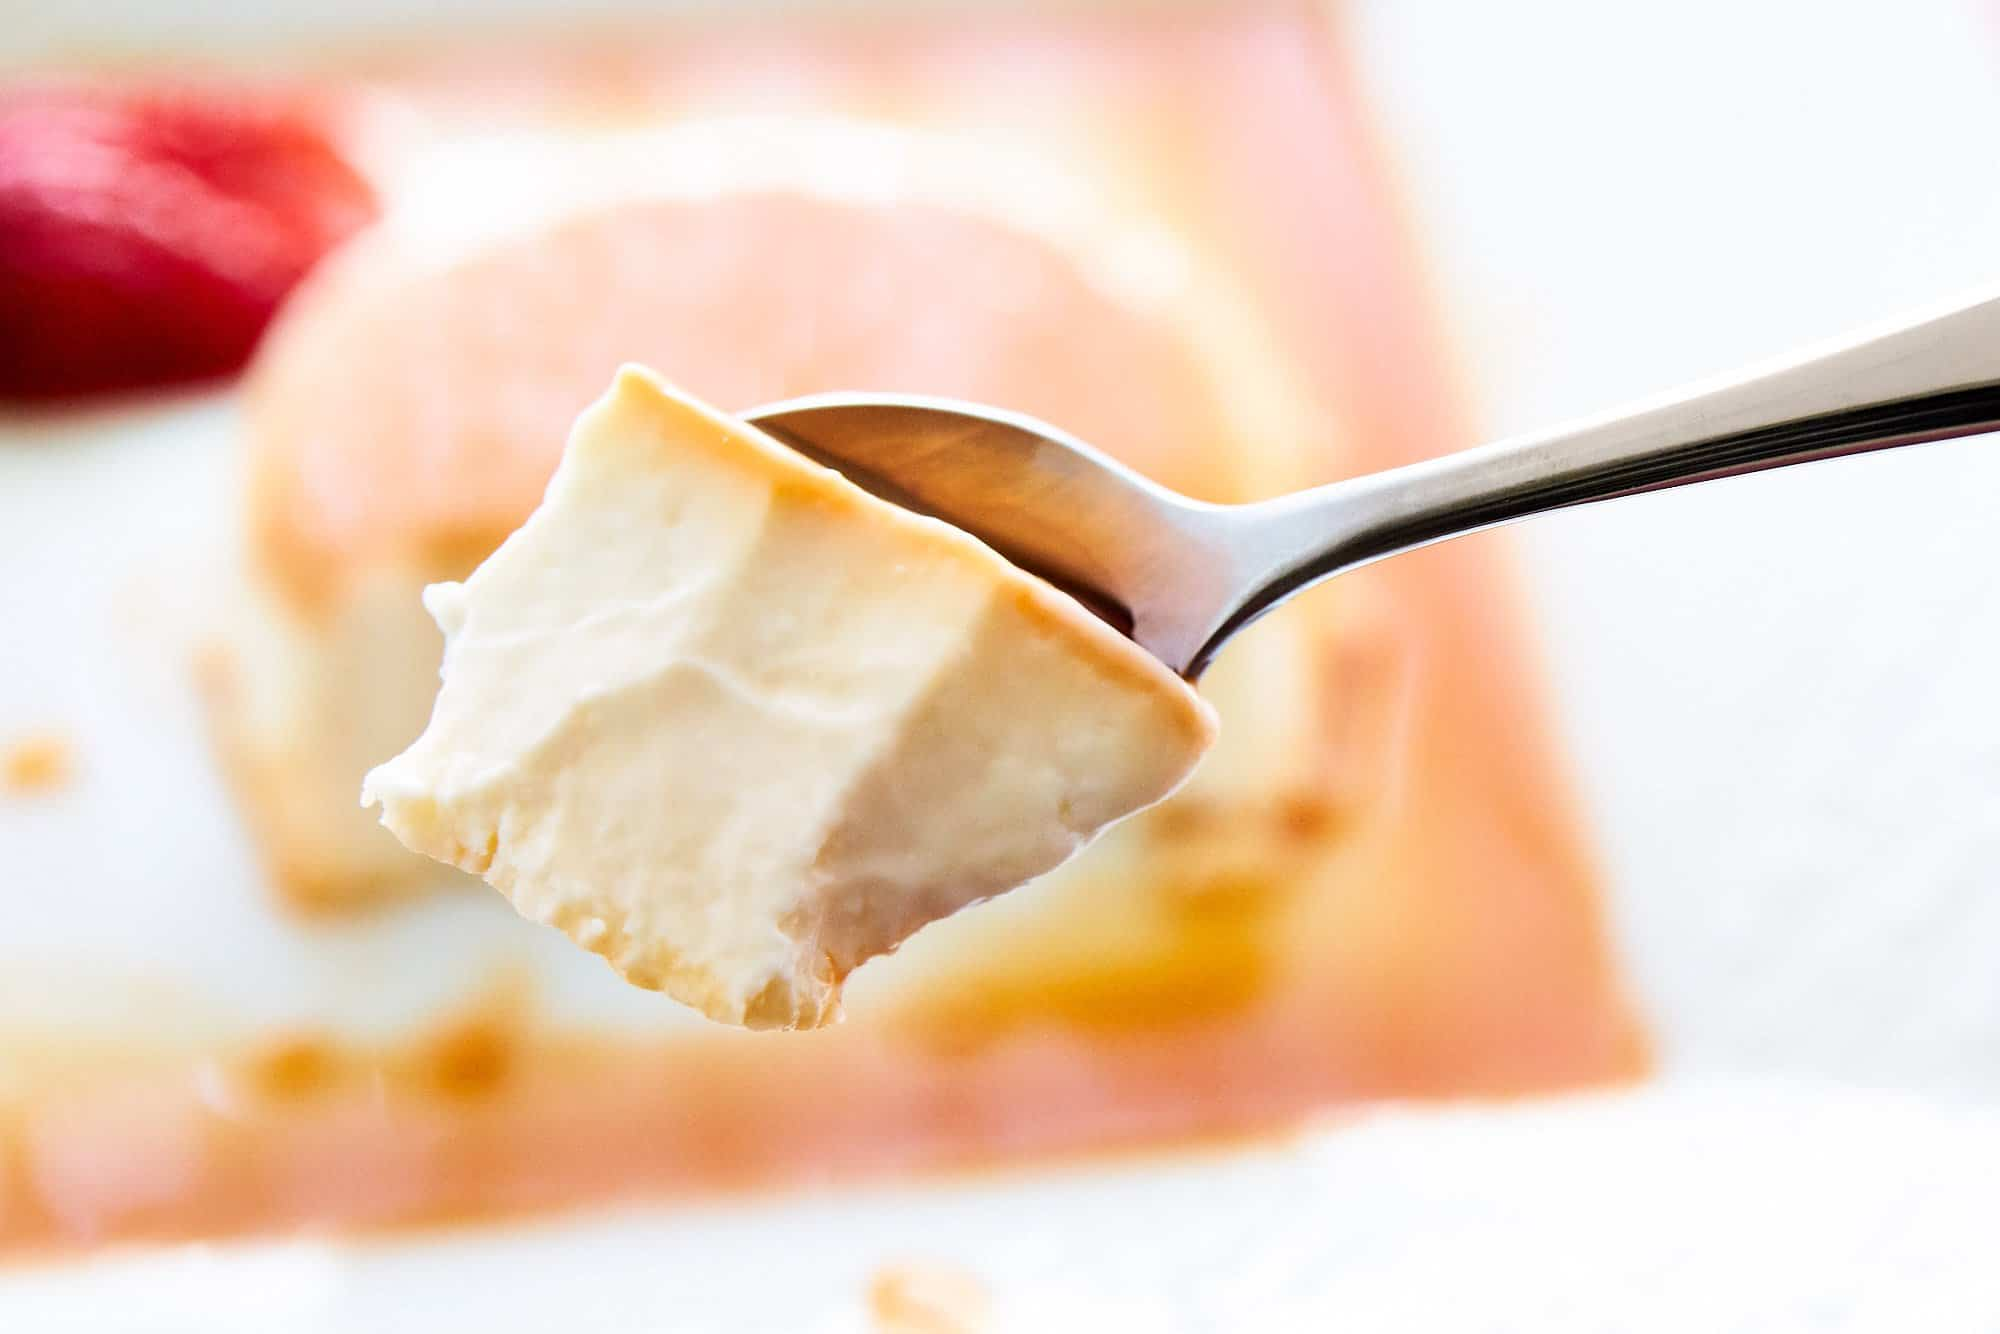 Ultra-creamy panna cotta recipe which gives this Italian classic the texture of soft butter.